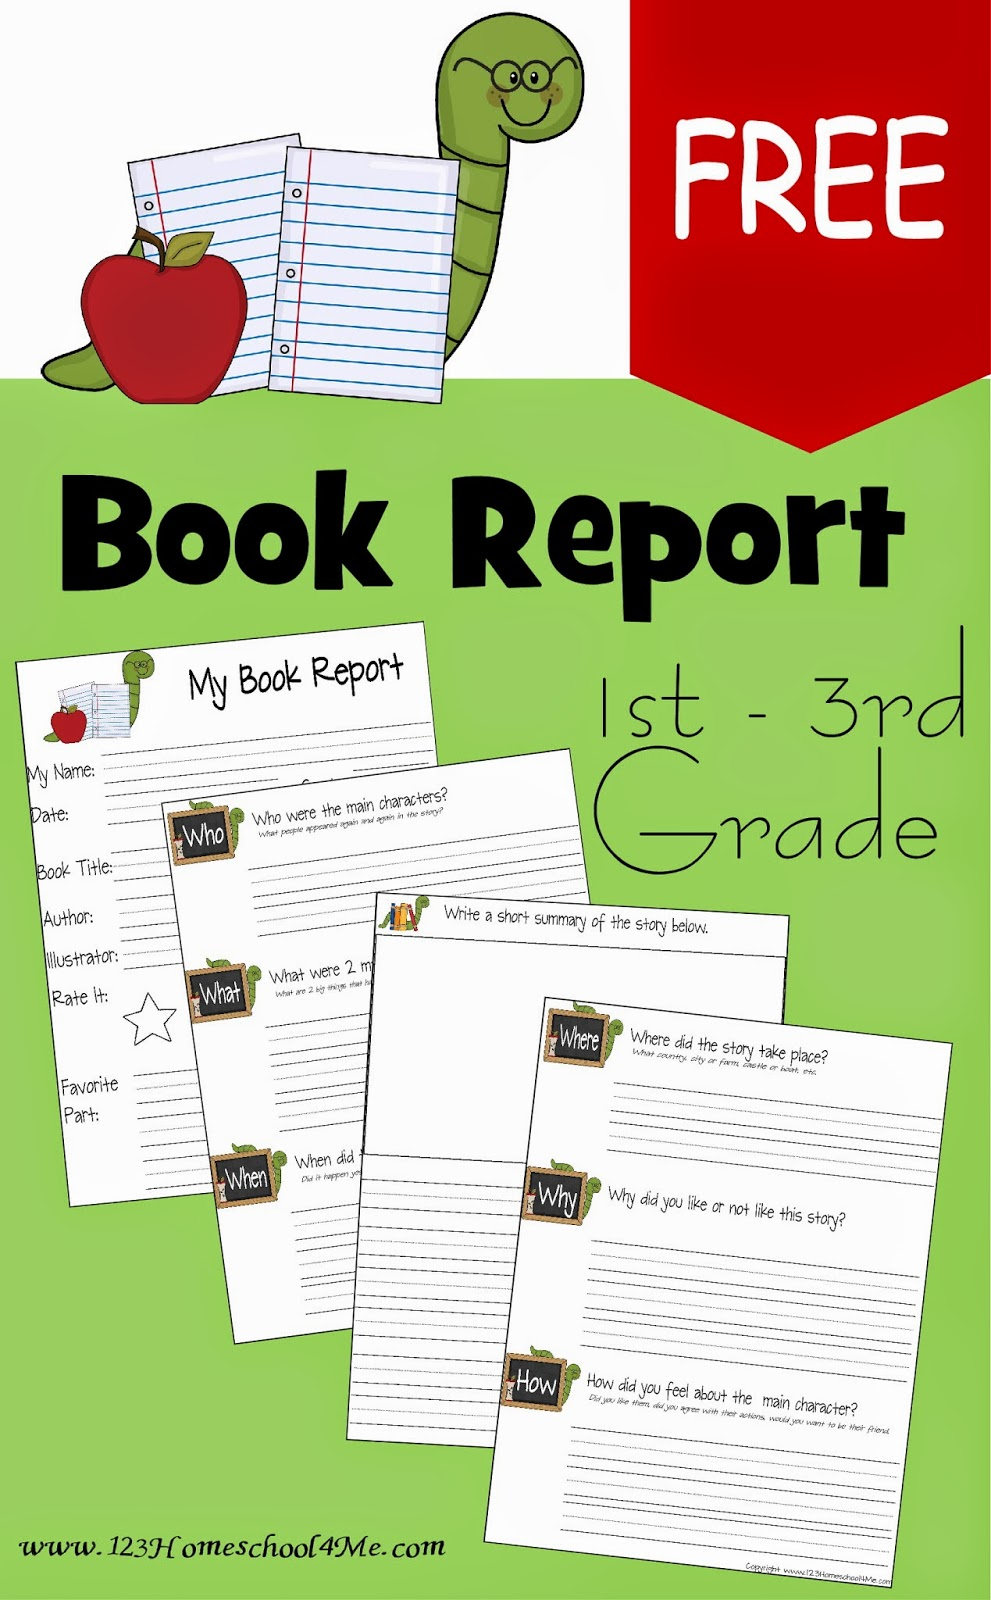 Book Report Worksheets For 2nd Grade [ 1600 x 991 Pixel ]